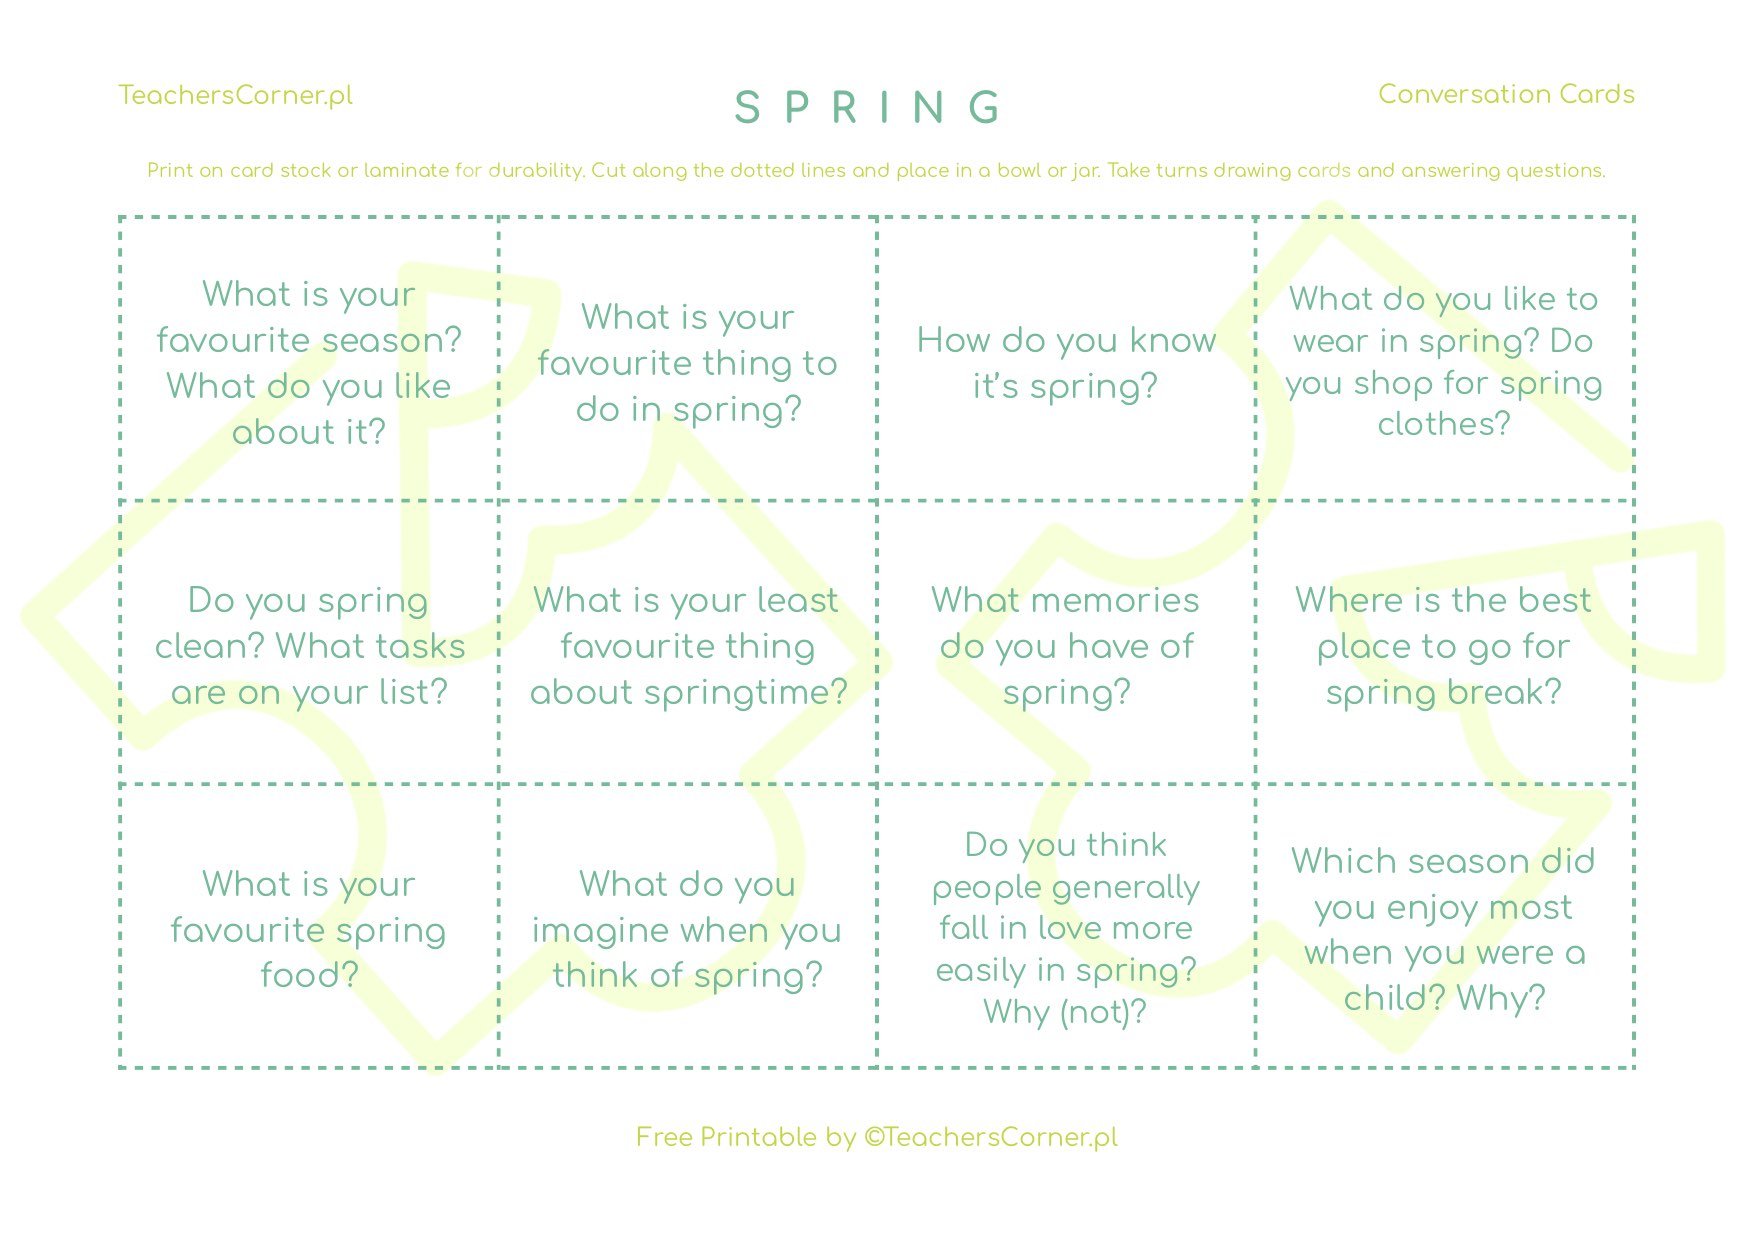 Spring conversation cards